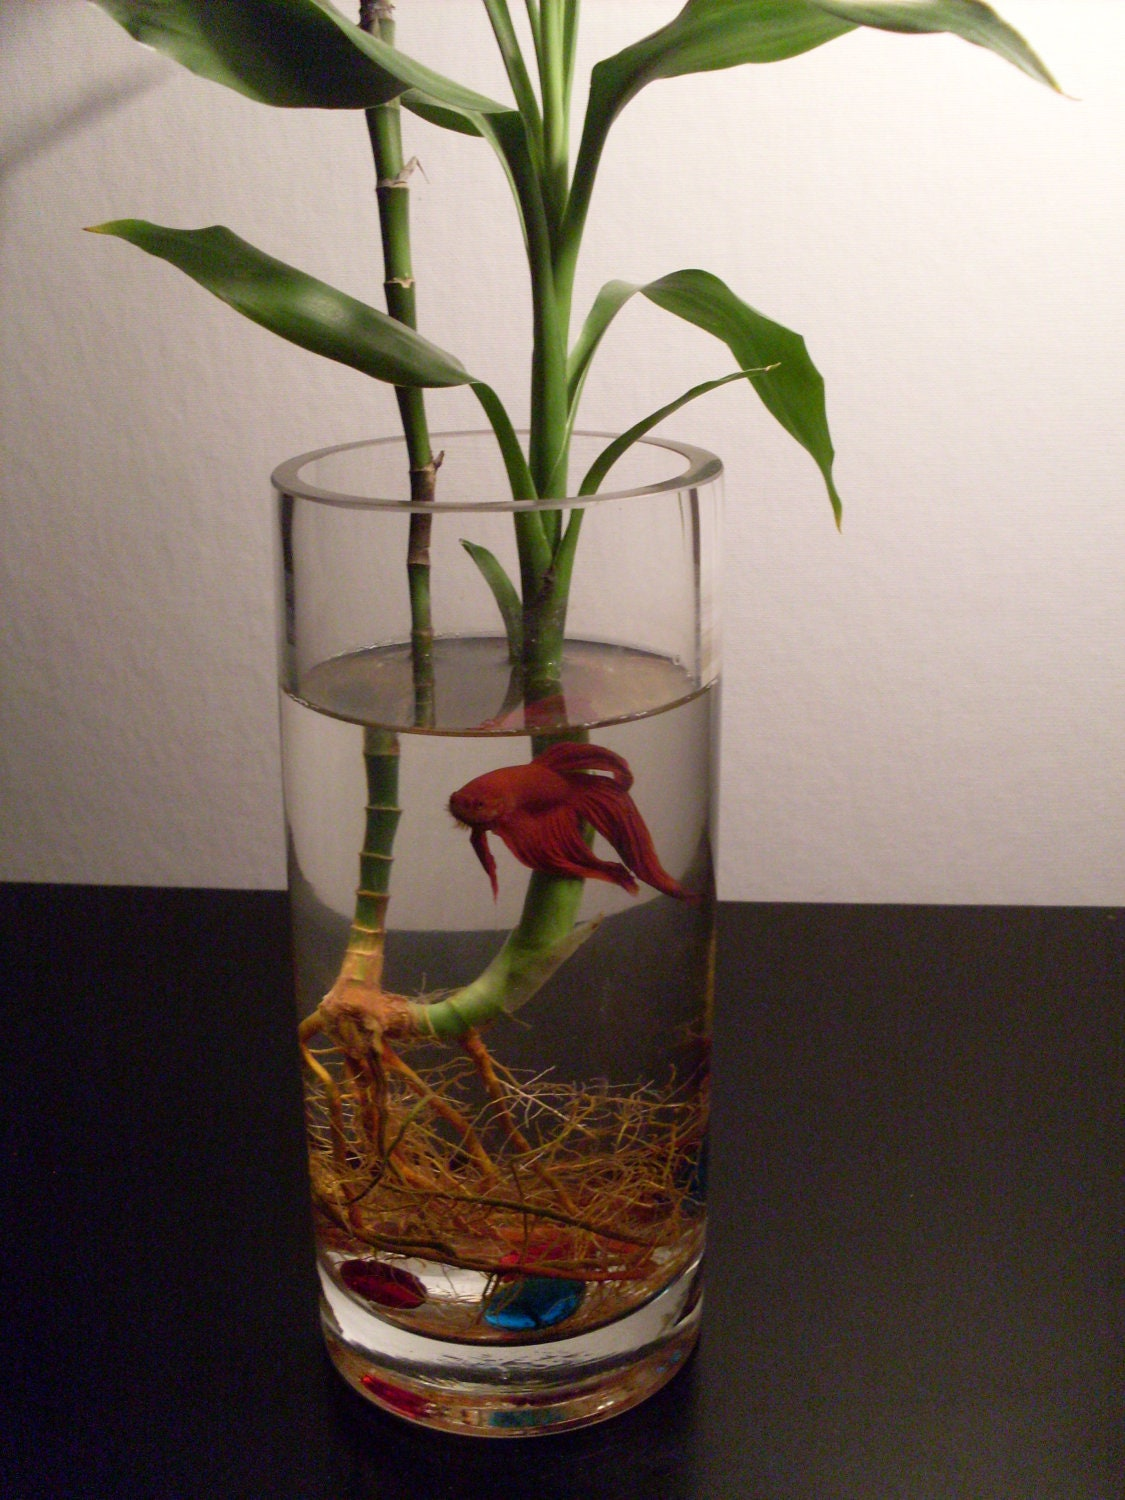 1000 images about beta fish bowls on pinterest for Betta fish bowl